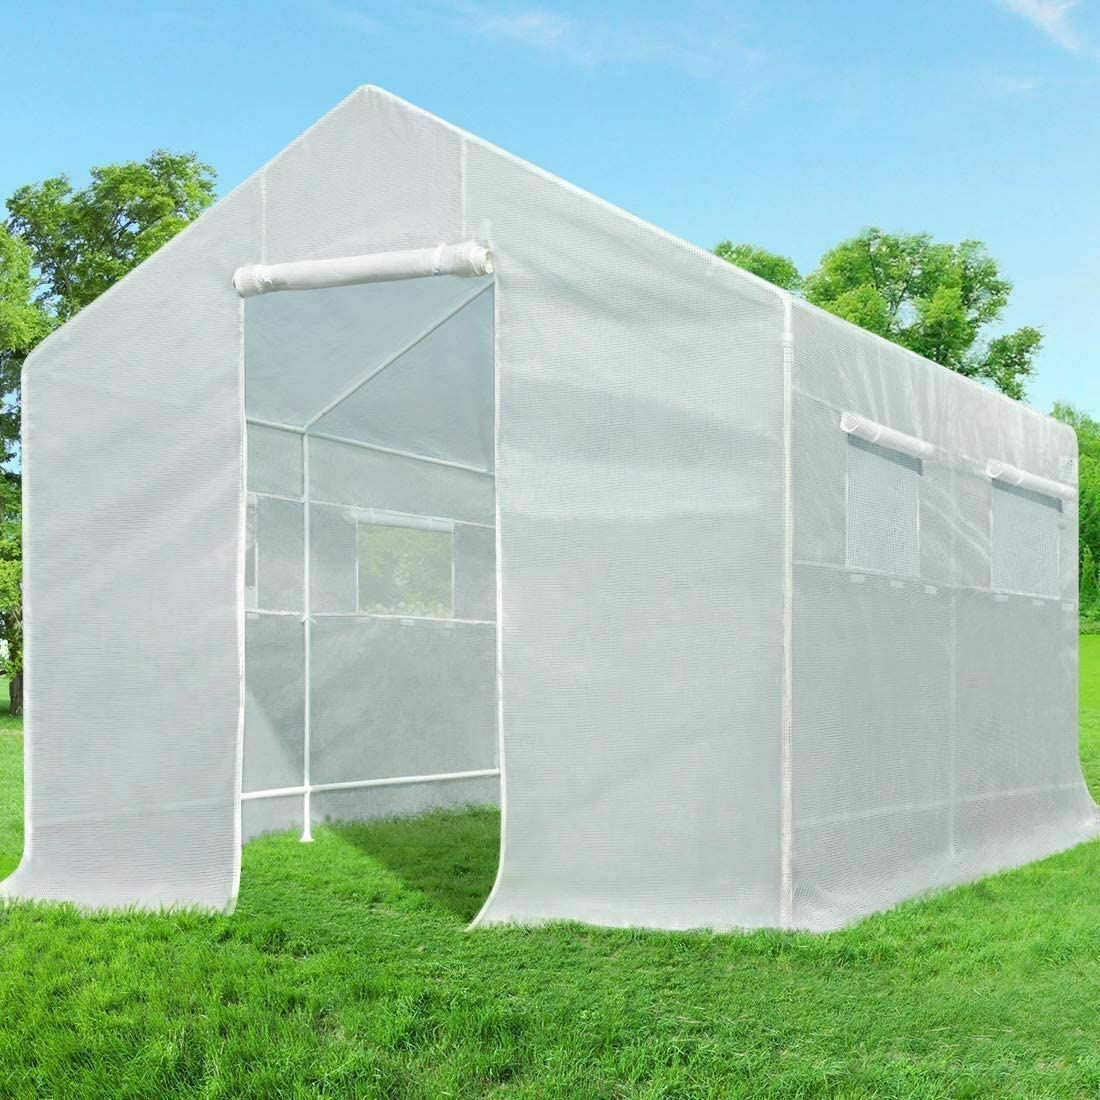 Review of Quictent 10x9x8 ft Portable Tunnel Greenhouse